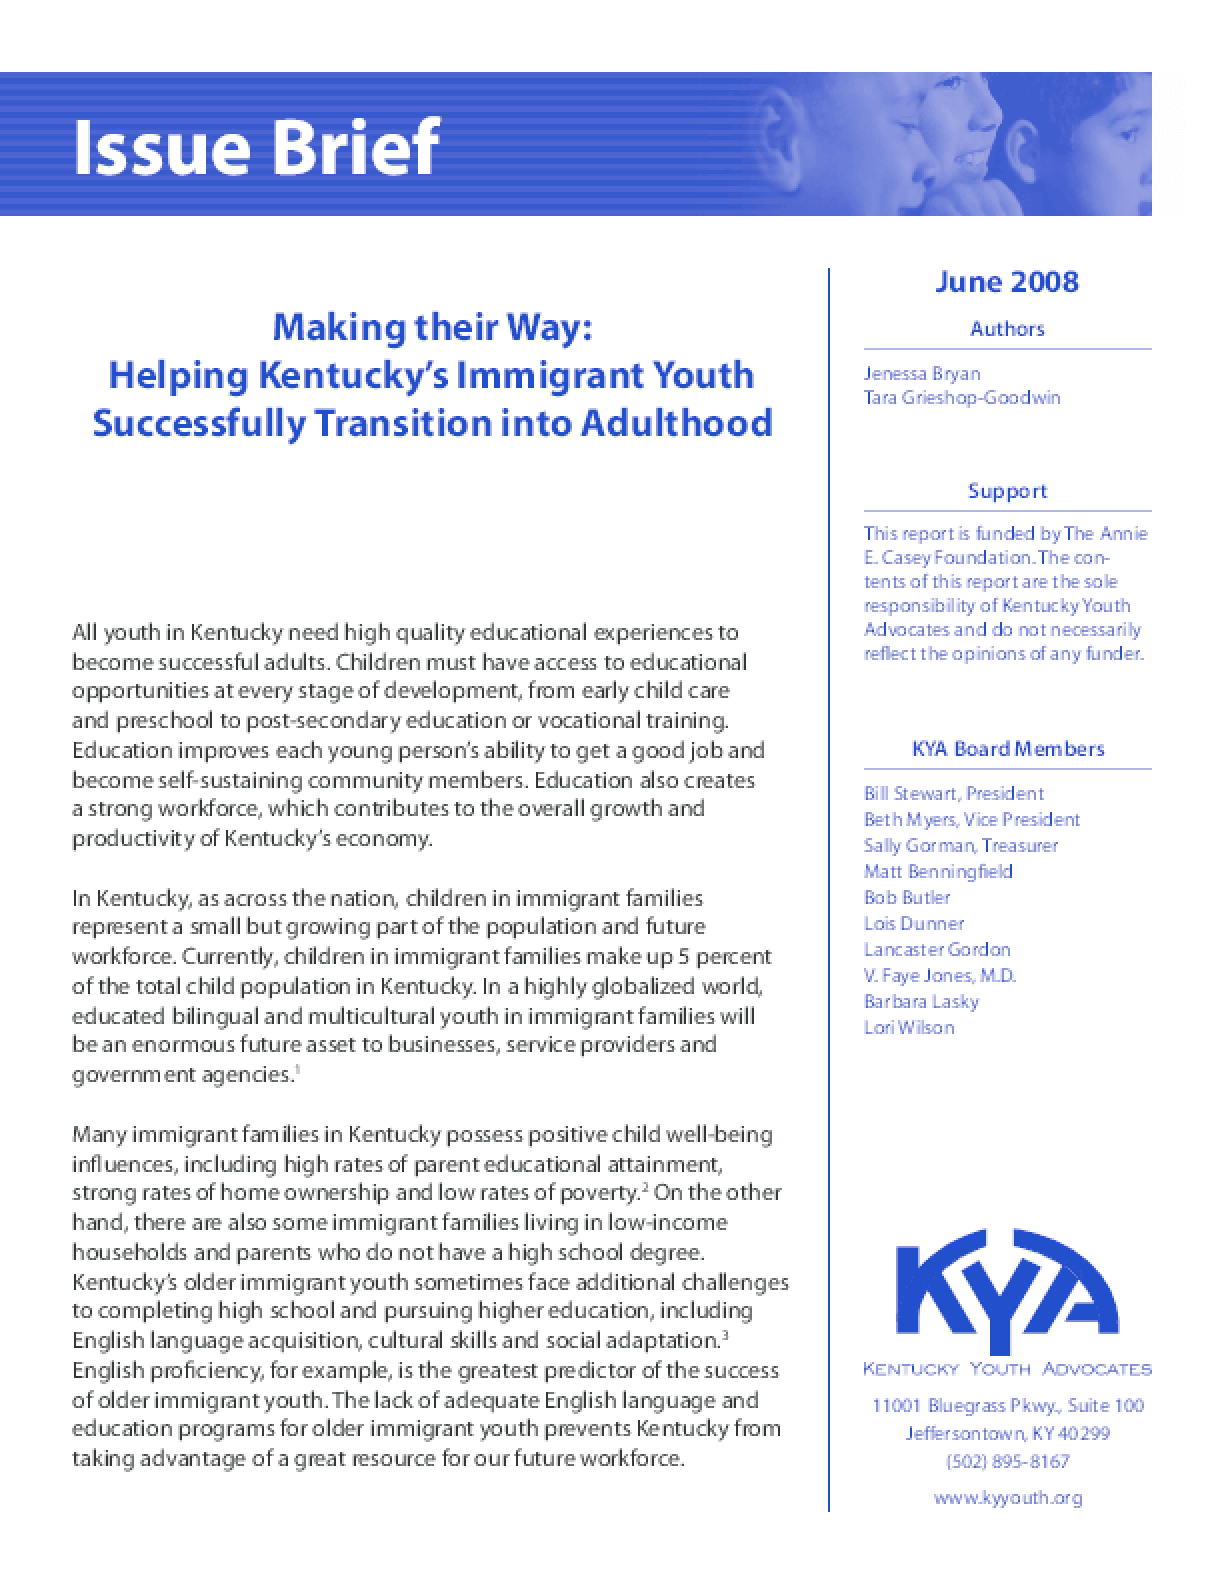 Making their Way: Helping Kentucky's Immigrant Youth Successfully Transition into Adulthood